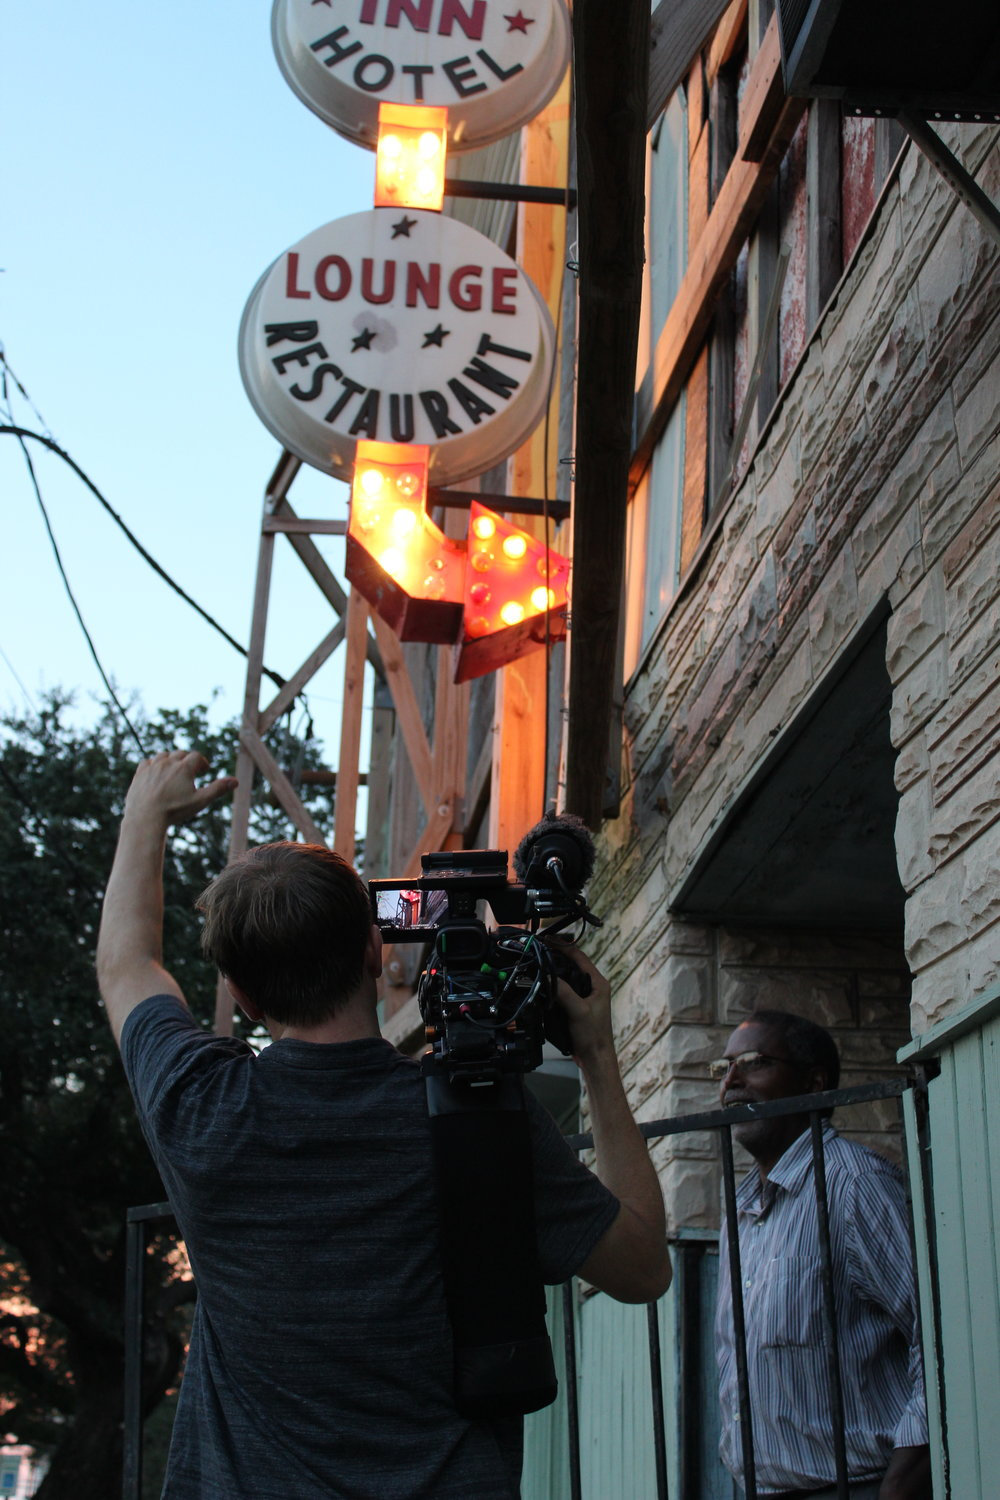 Filming at the Dew Drop Inn in New Orleans.